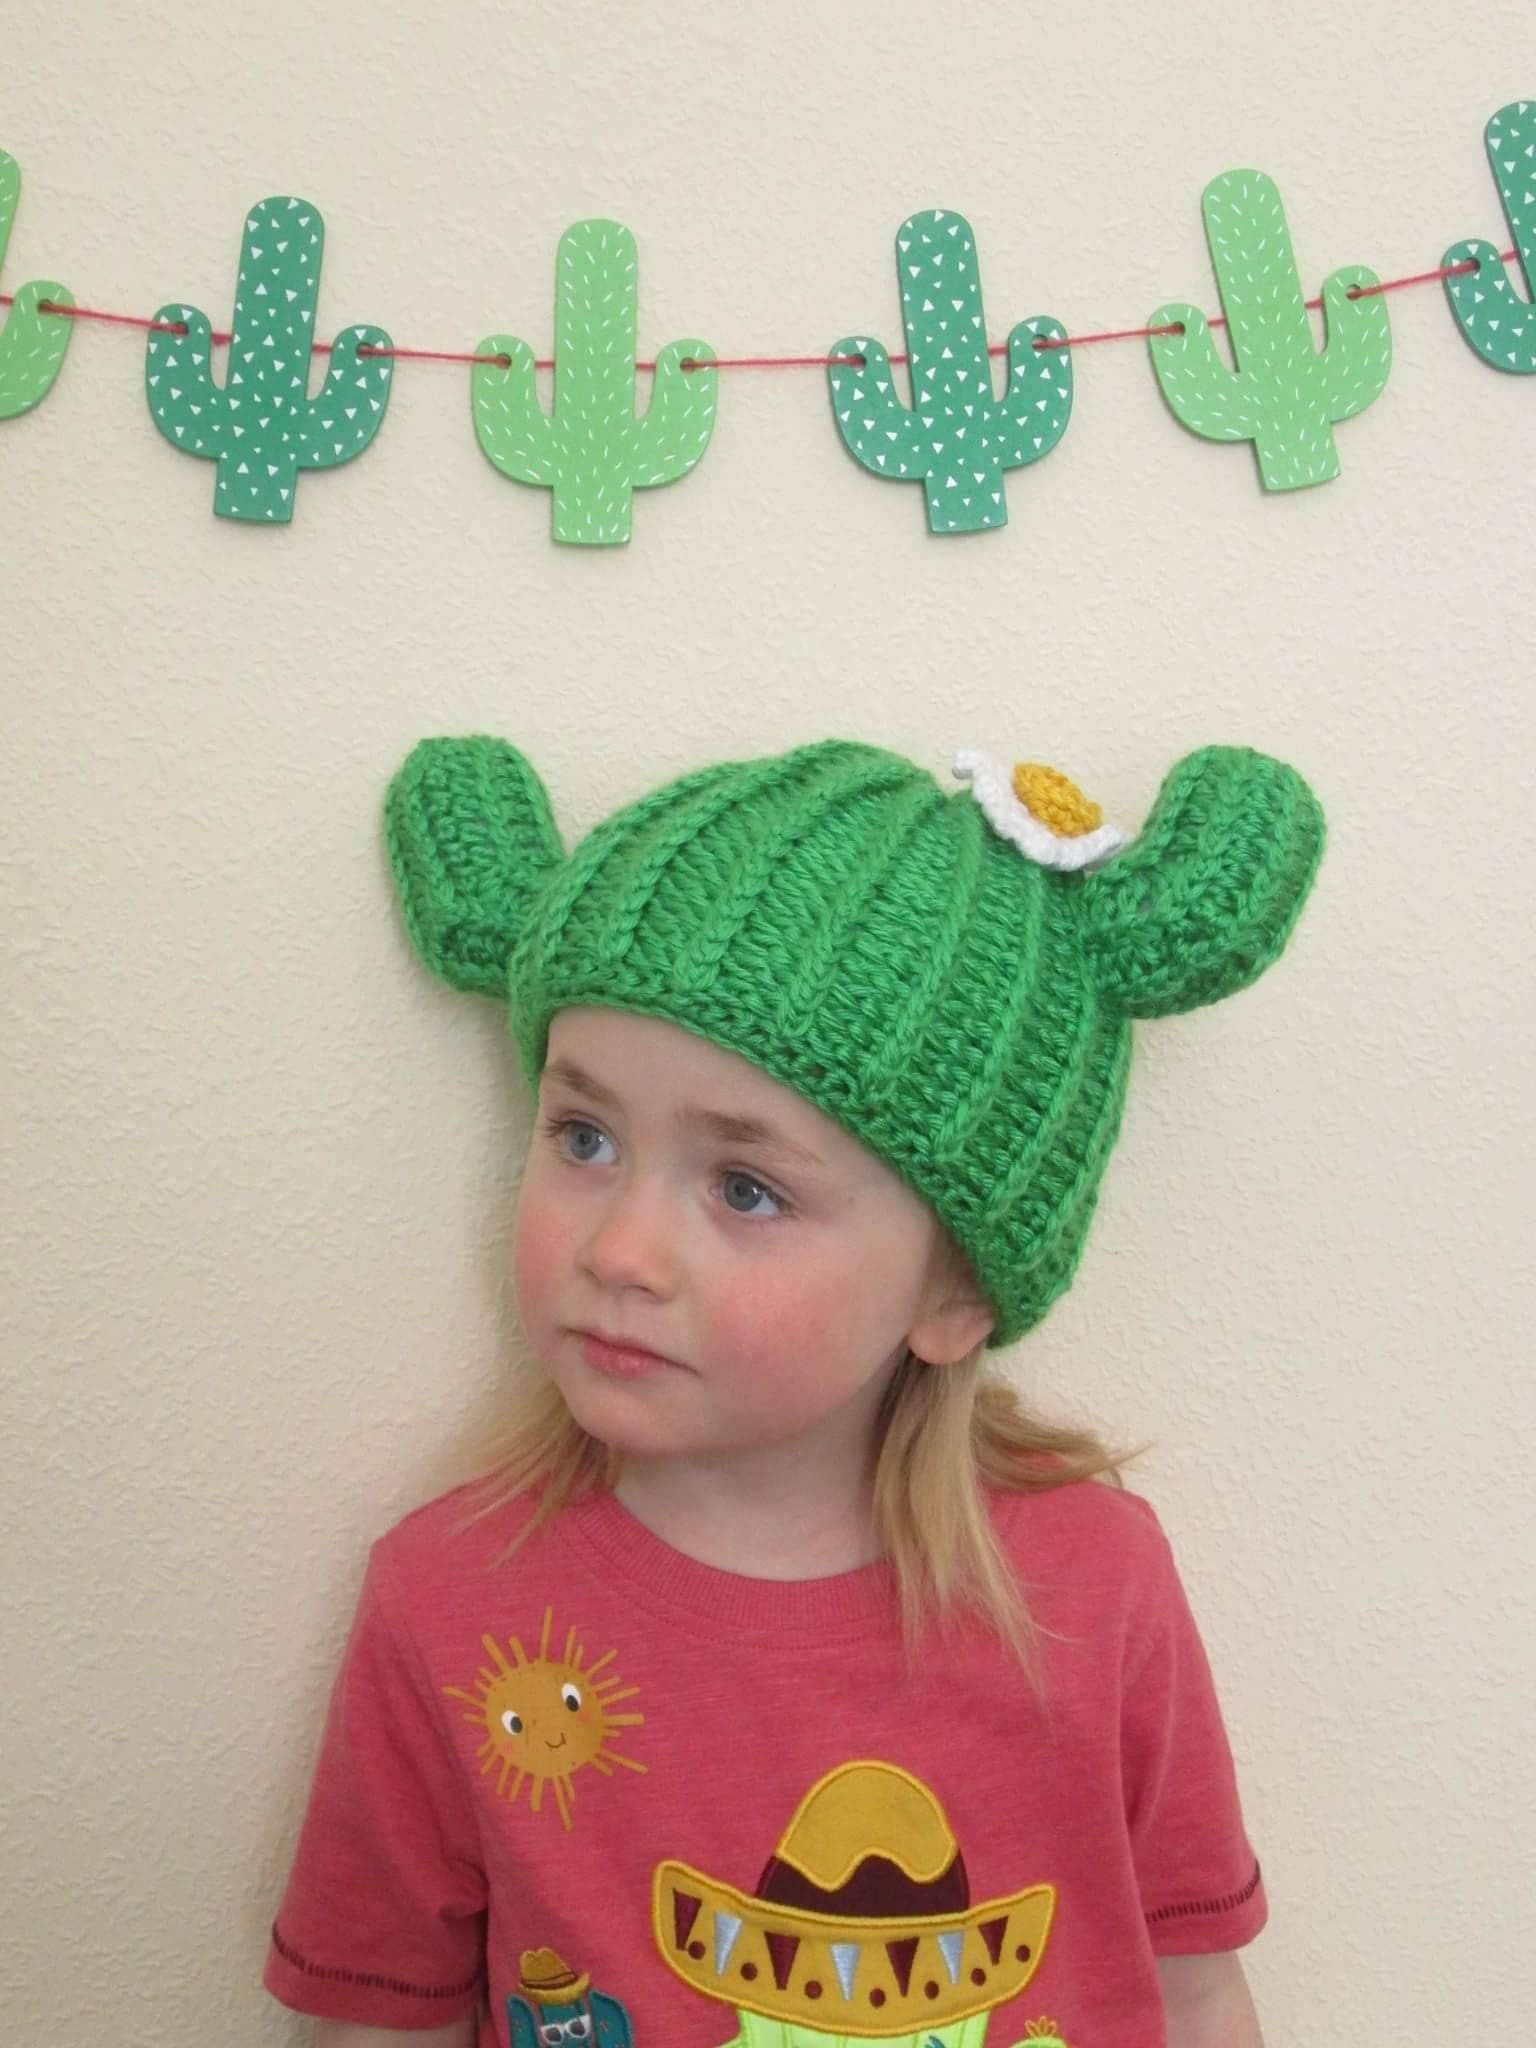 Handmade Crocheted Baby and Toddler s Cactus Novelty Hat  Cactus ... 0f8e1fb6661a